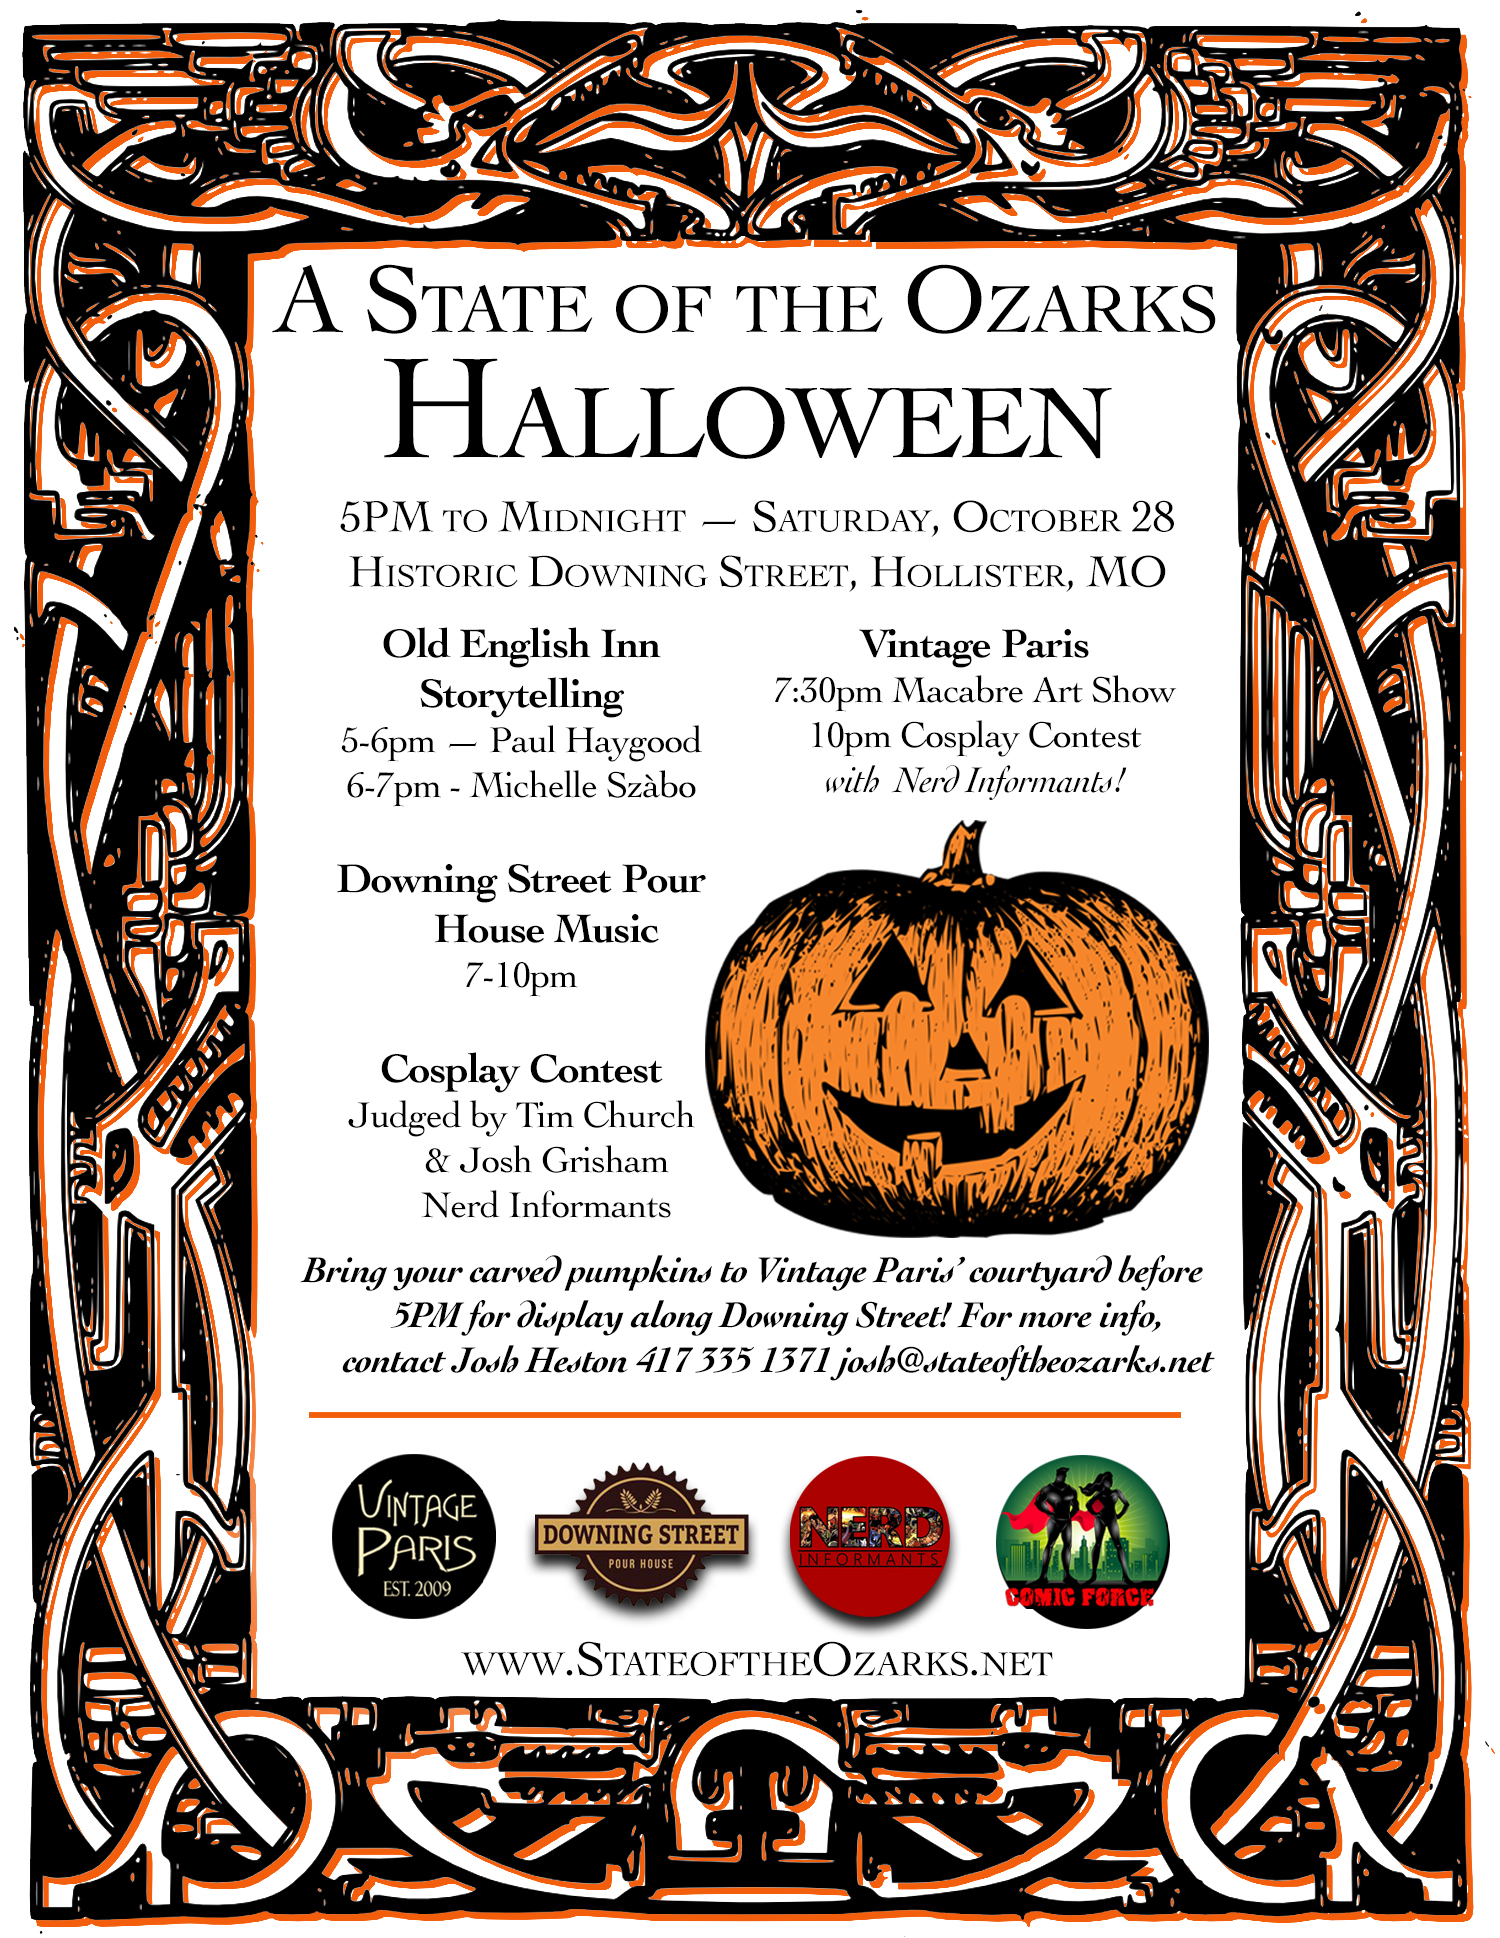 A State of the Ozarks Halloween